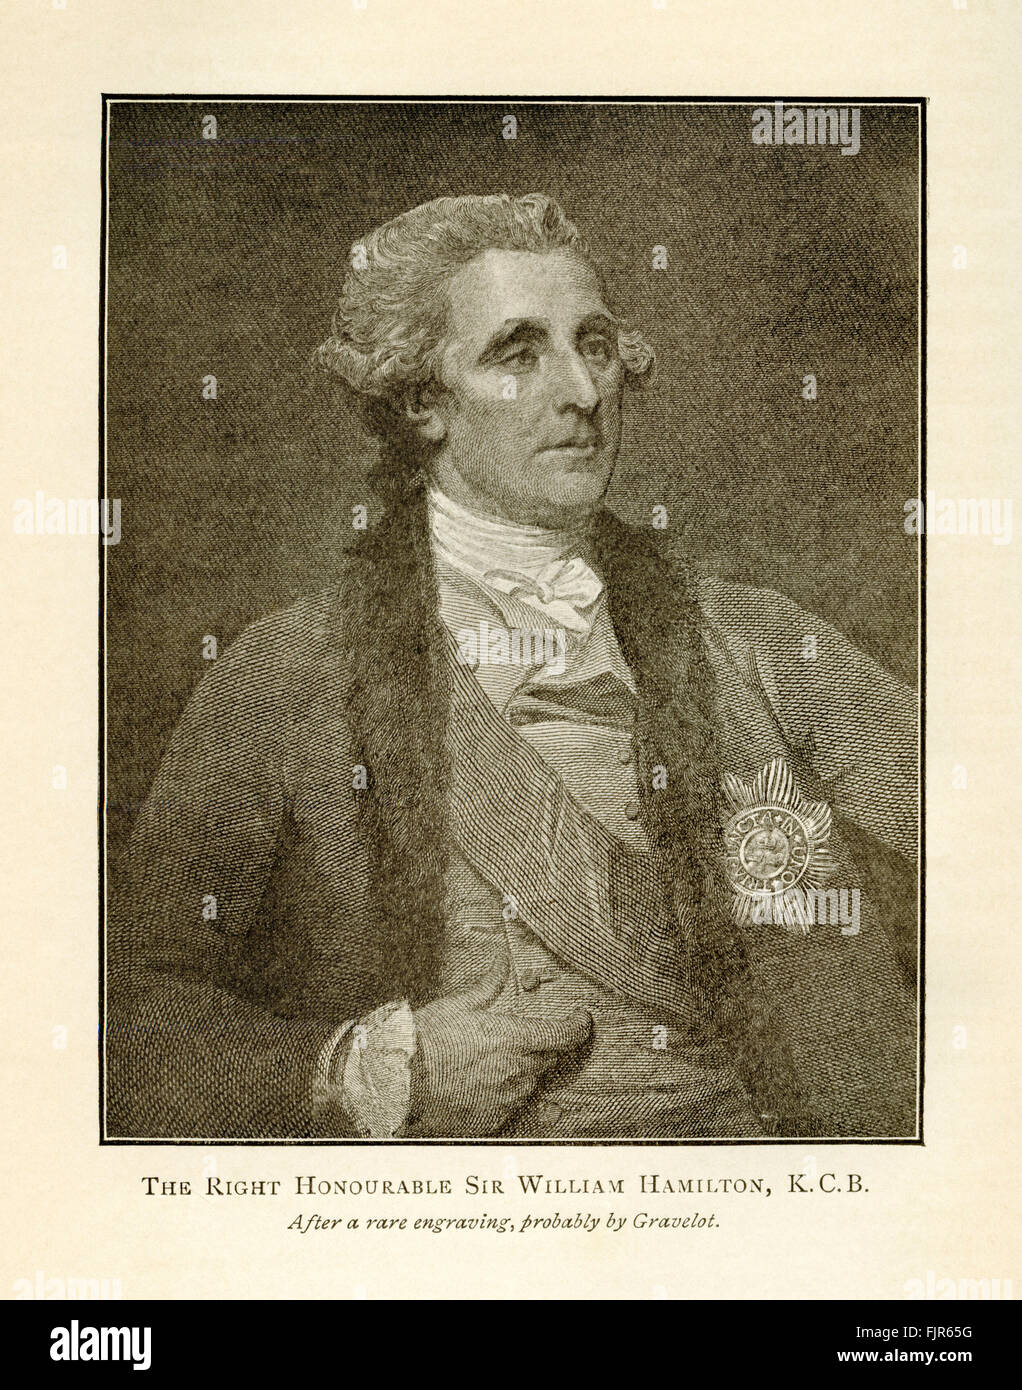 The Right Honourable Sir William Hamilton, K.C.B., from an engraving probably by Hubert-François Bourguignon - Stock Image